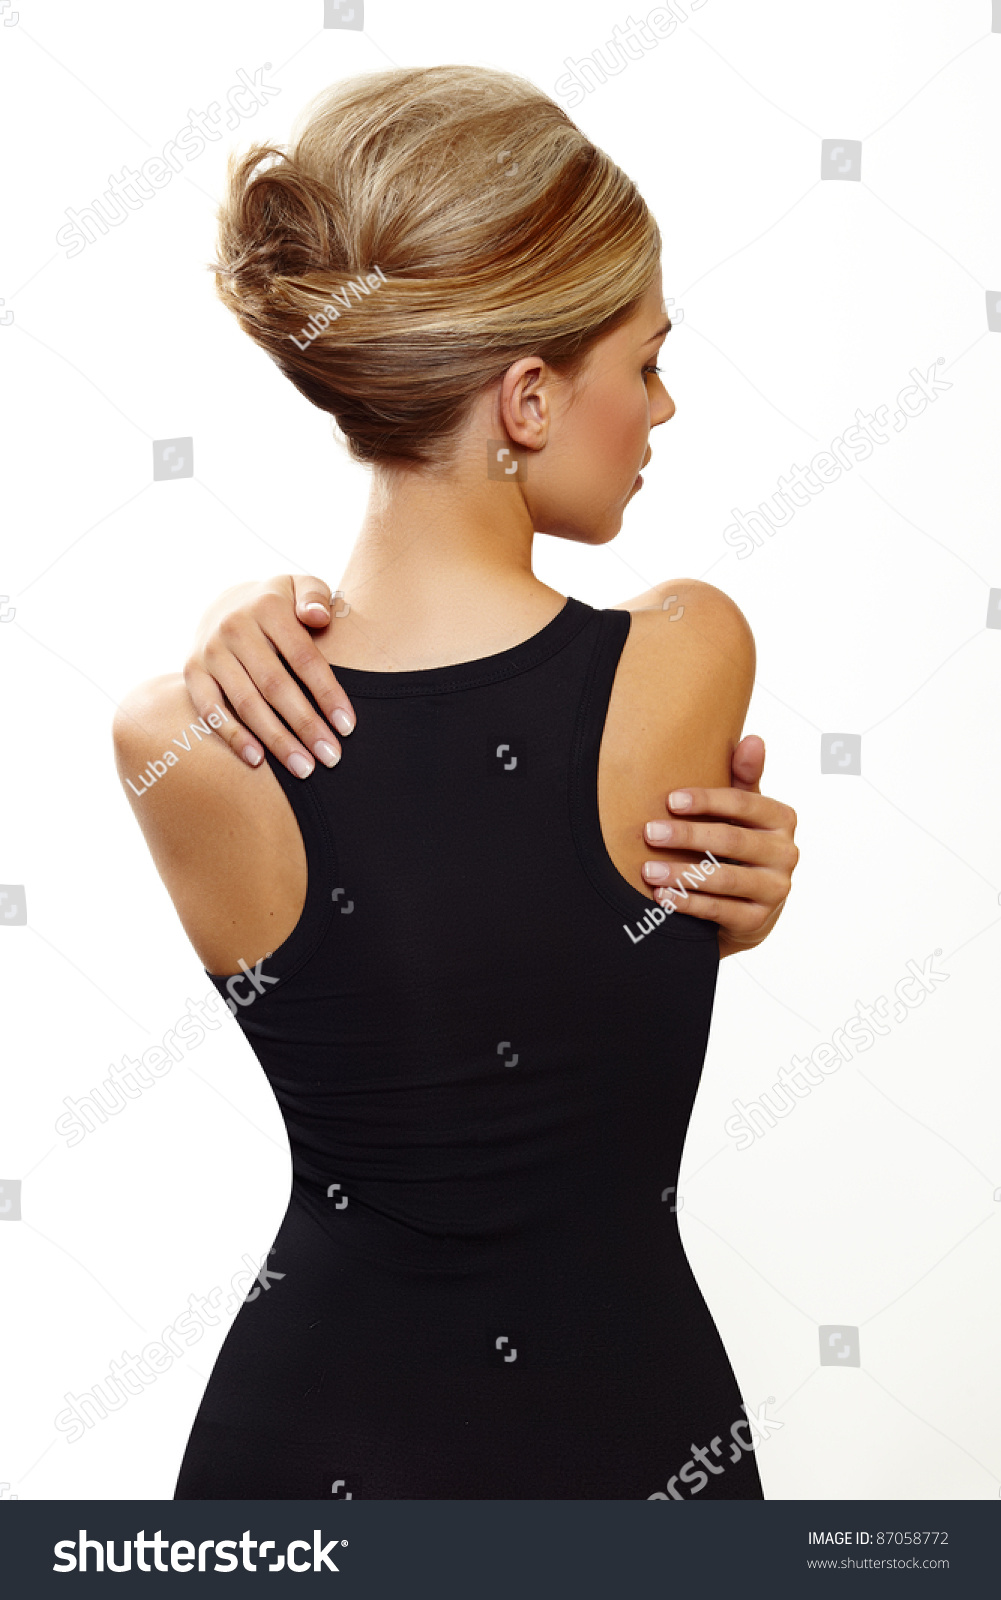 Black dress hairstyle - Beautiful Woman Wearing Hair In French Roll Updo In Sexy Black Dress Standing With Her Back